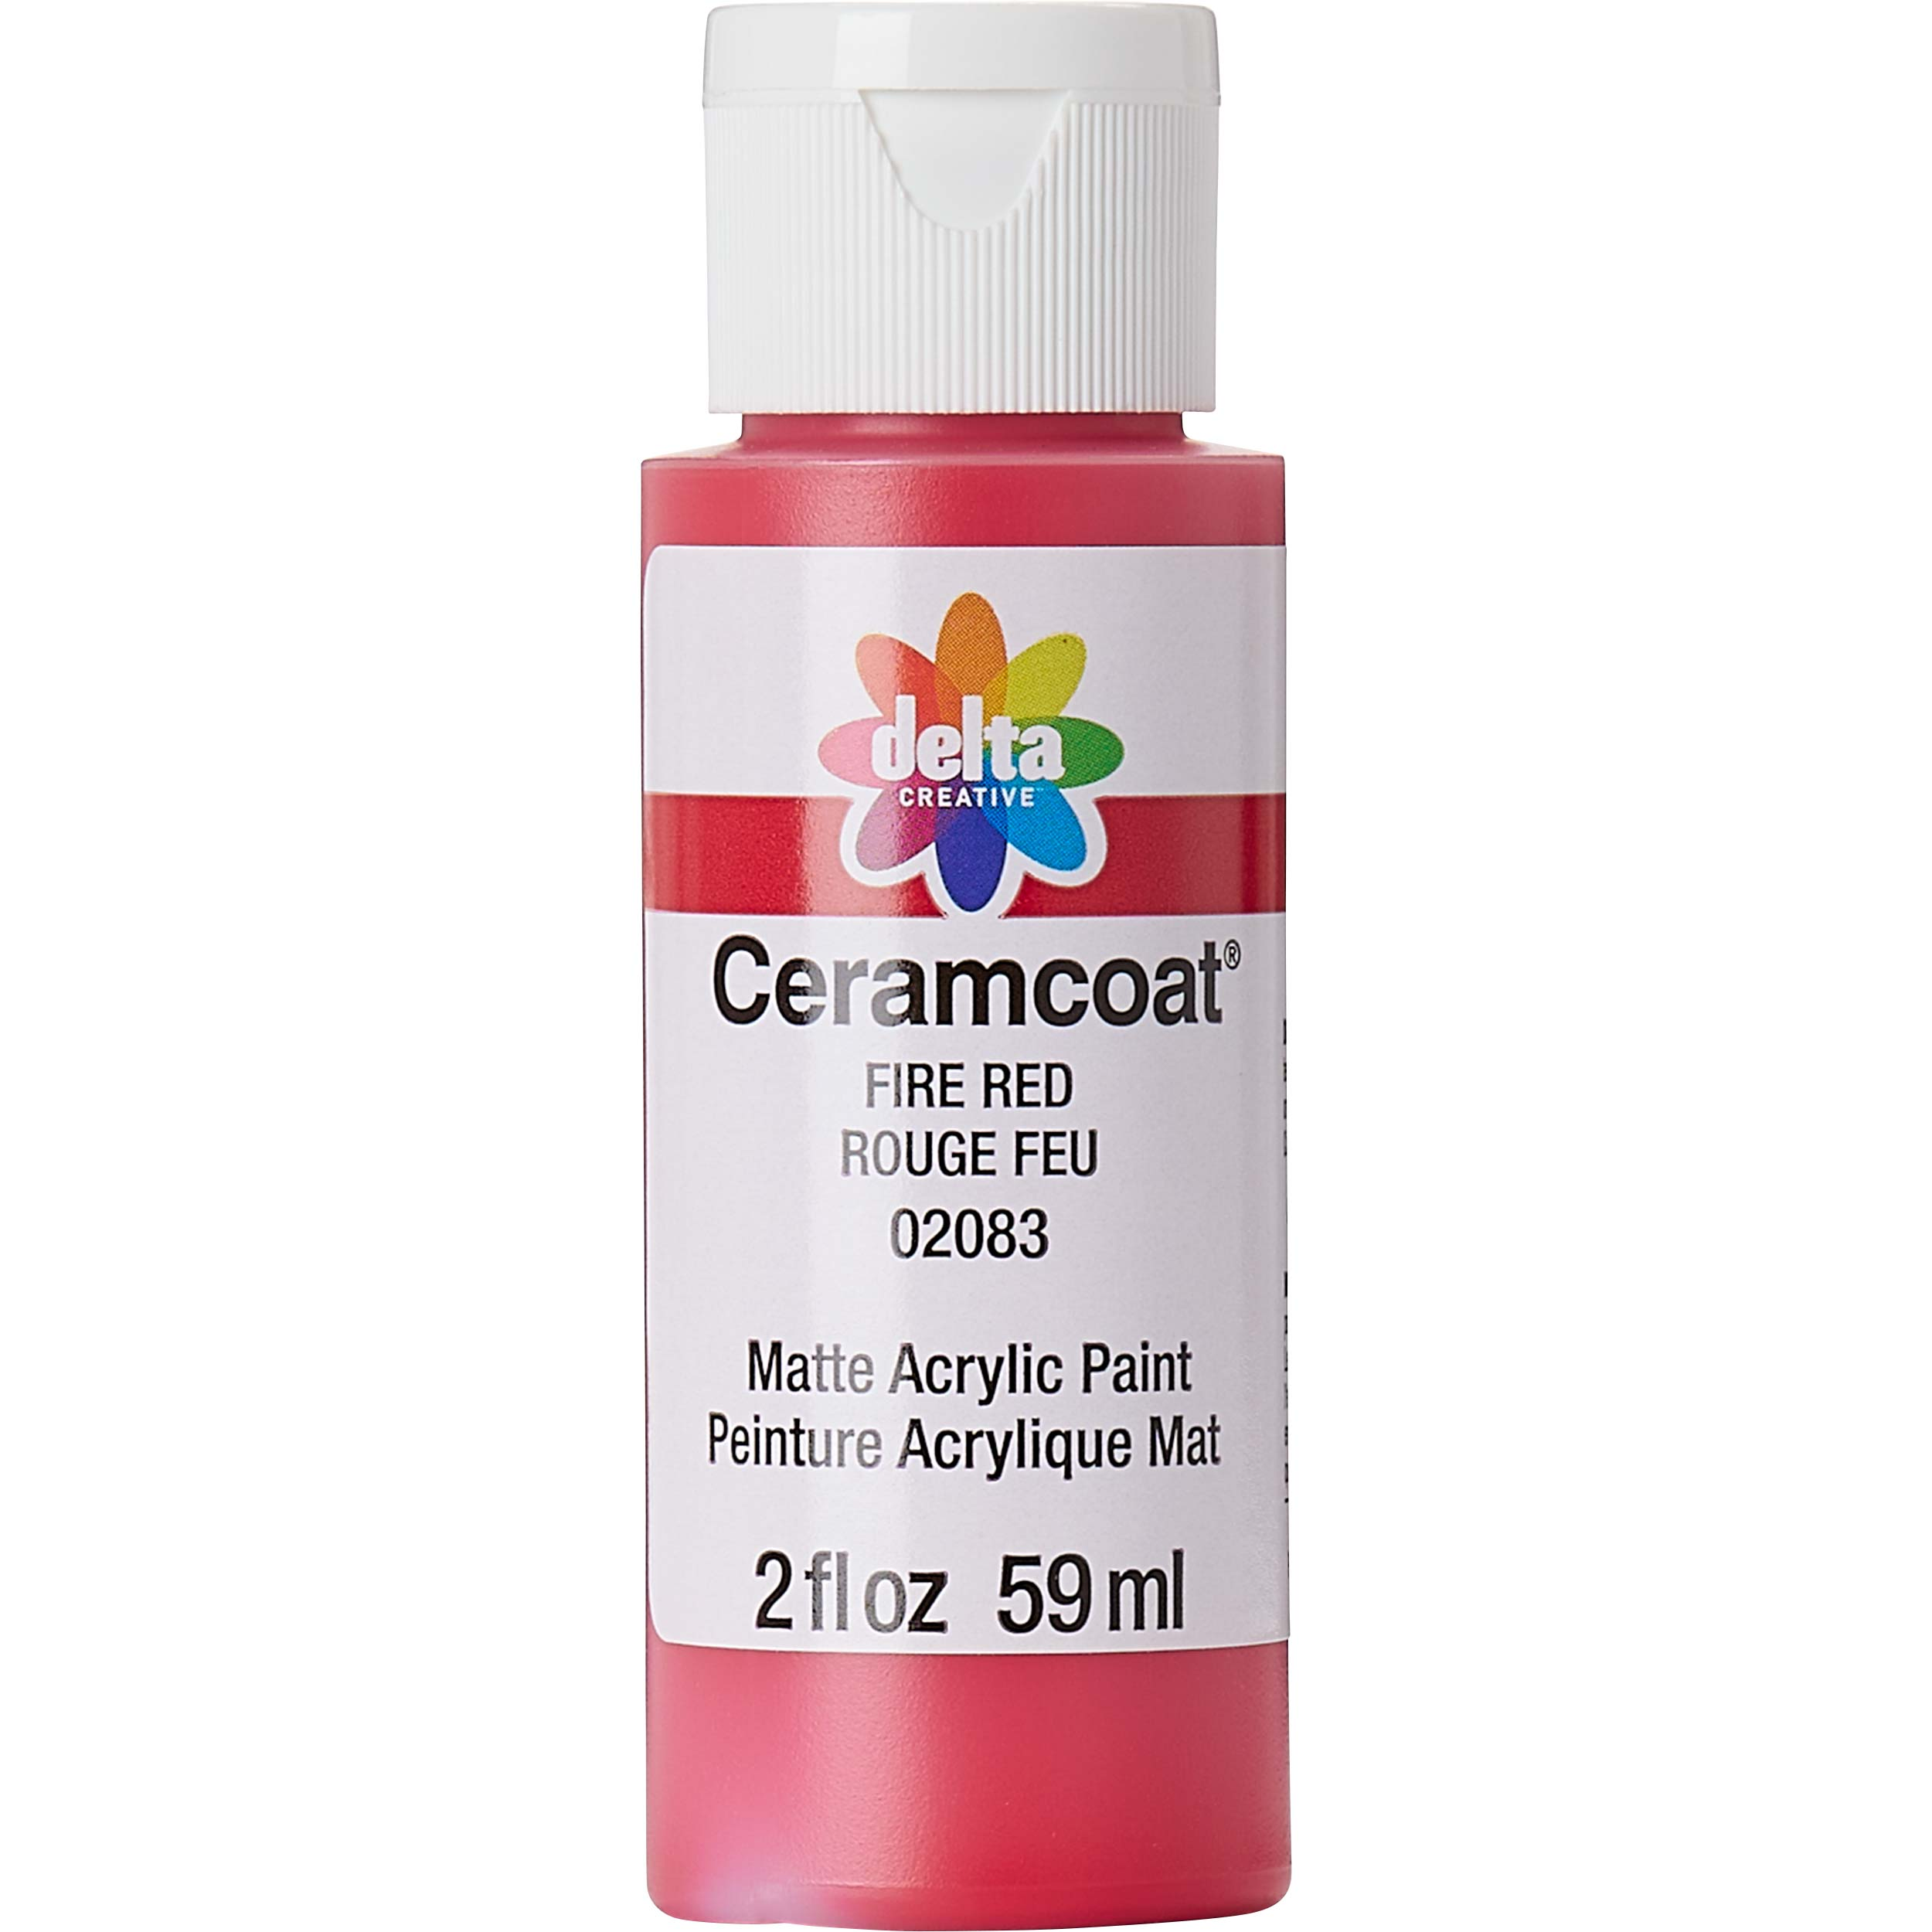 Delta Ceramcoat ® Acrylic Paint - Fire Red, 2 oz. - 020830202W